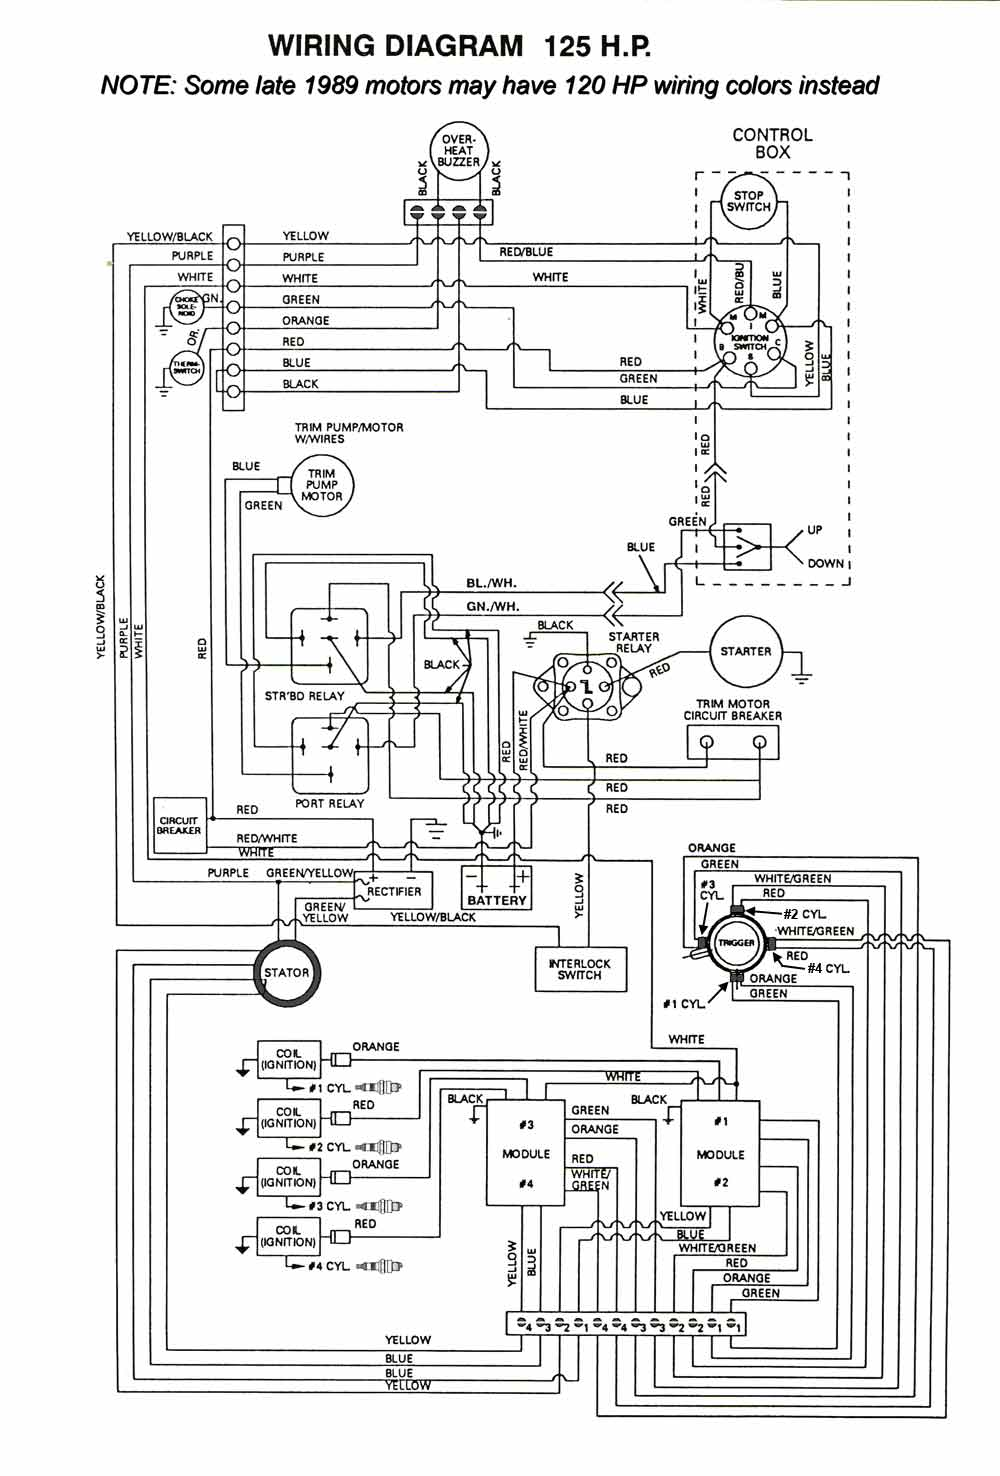 medium resolution of chrysler outboard wiring diagrams mastertech marine rh maxrules com 1996 mercury outboard wiring diagram 40 hp 1989 force 50 hp outboard wiring diagram